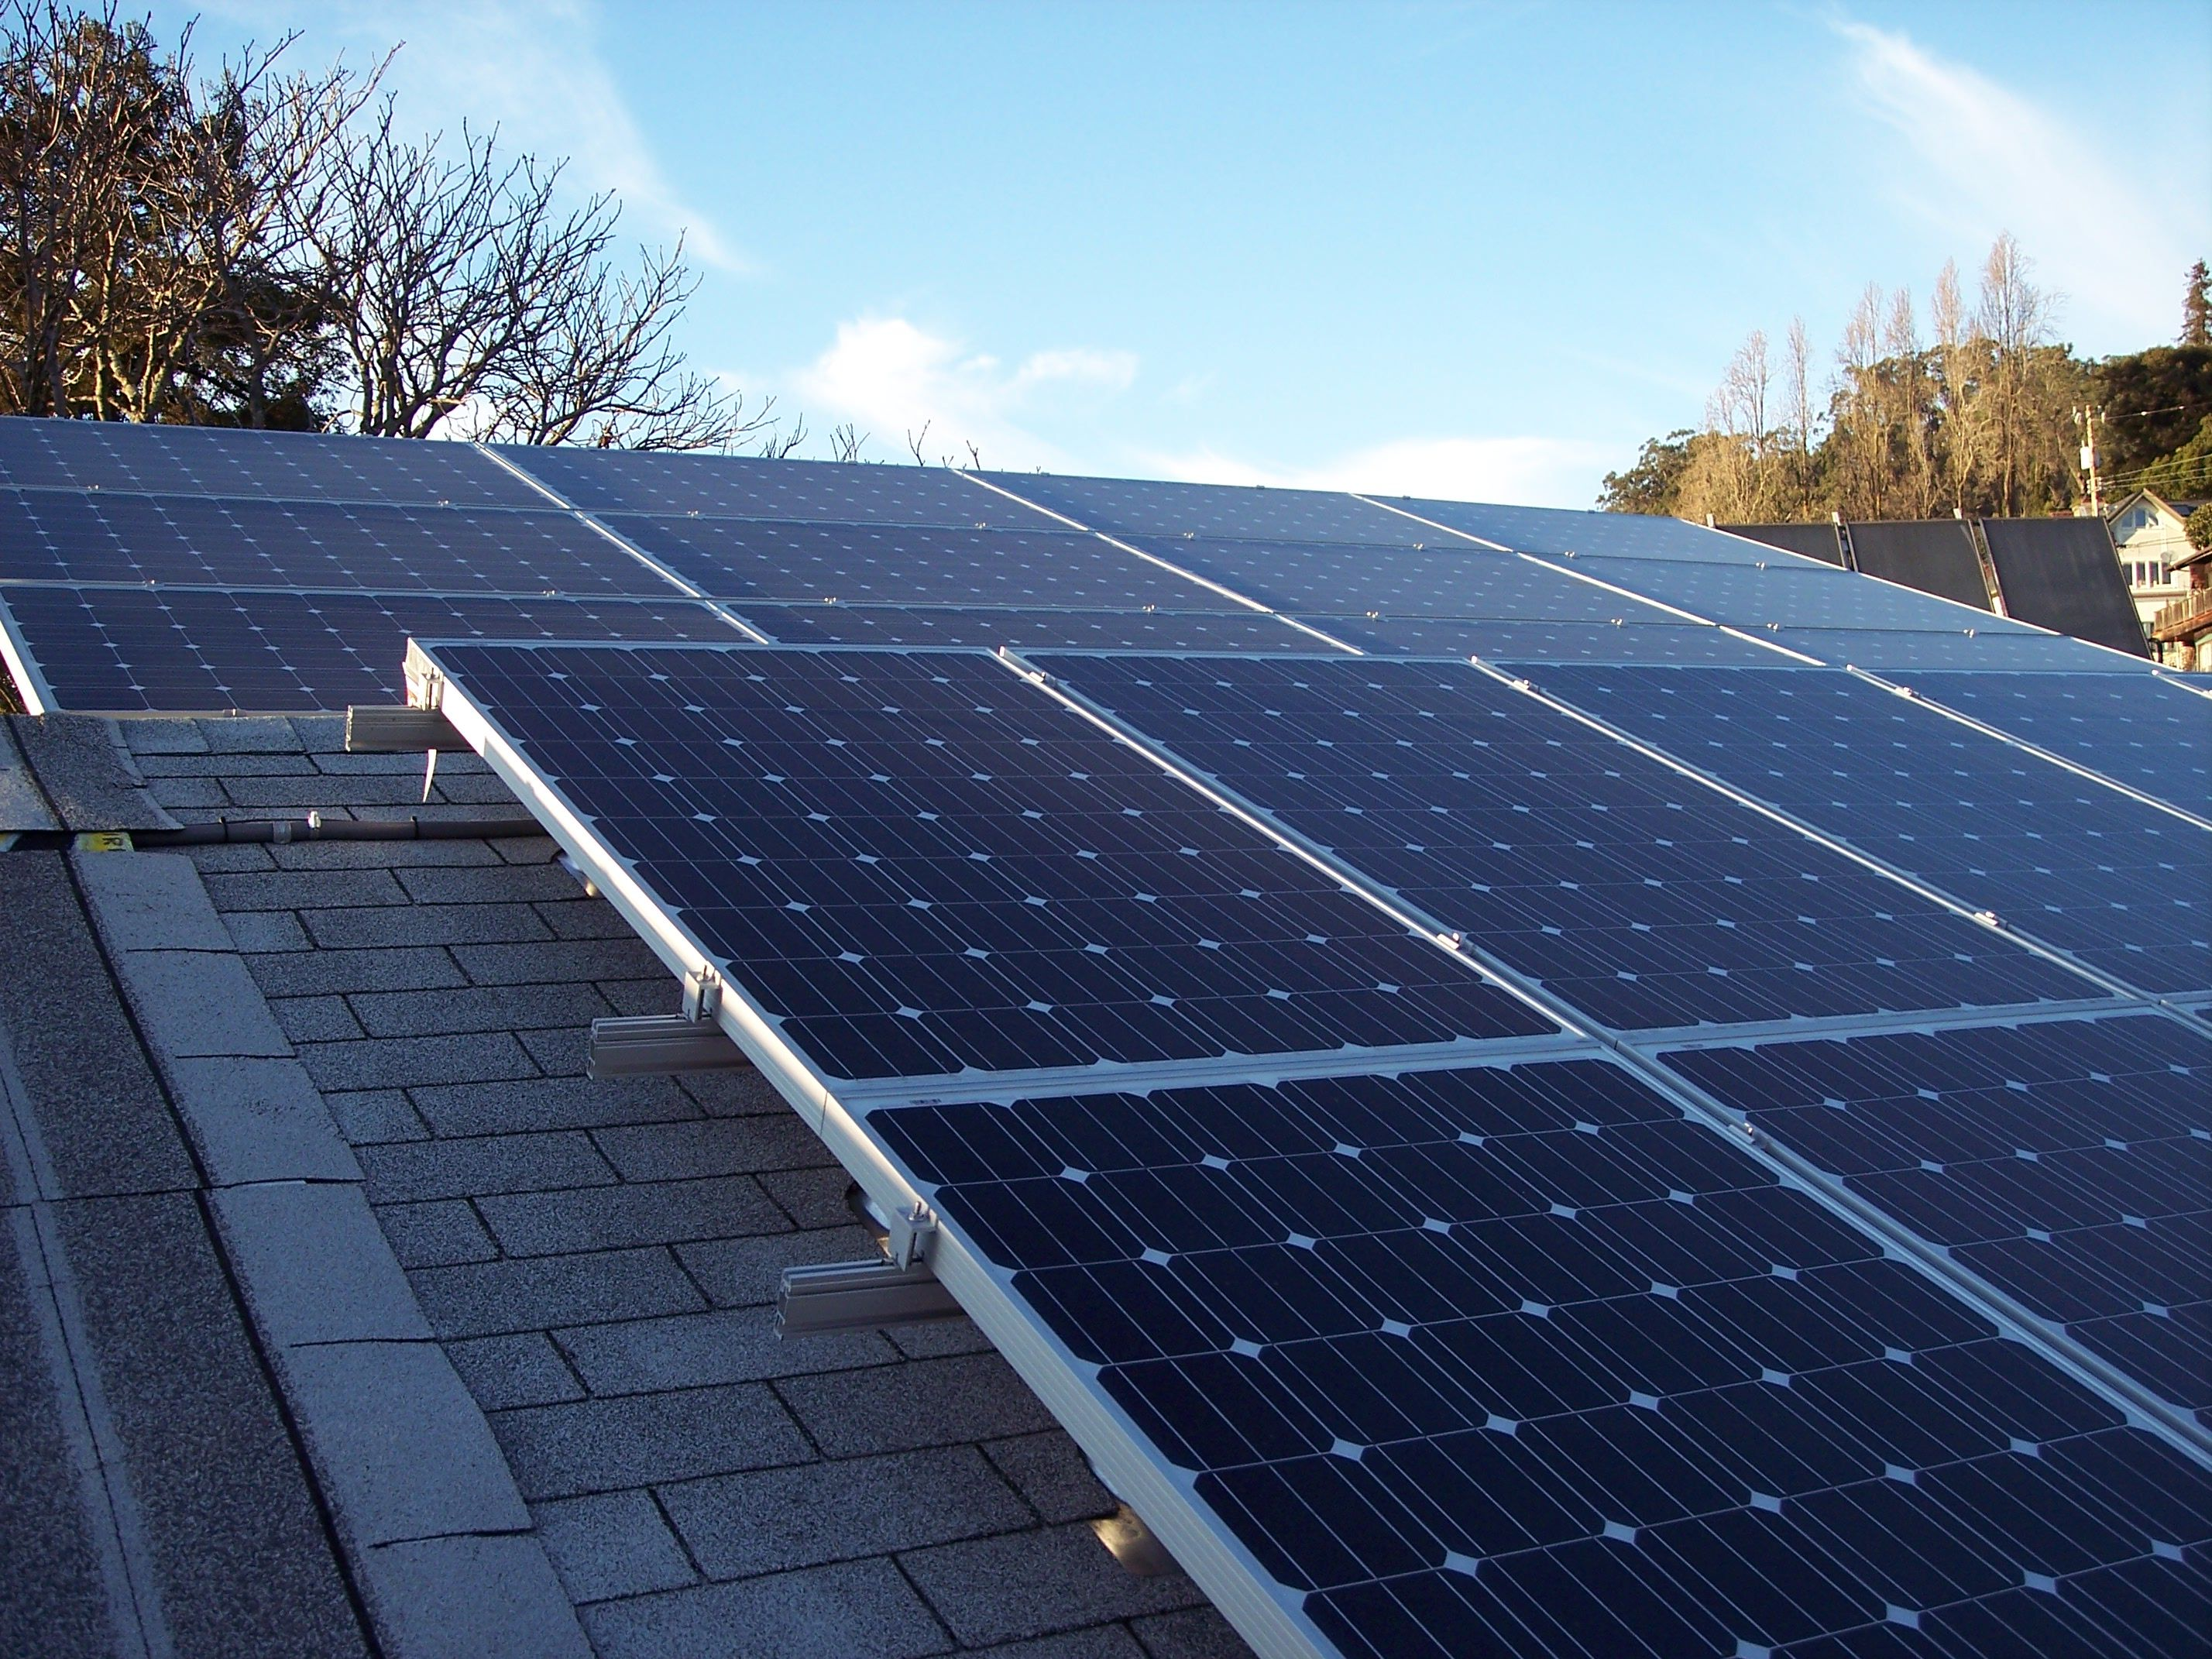 Pin By Reputable Home Services On Home Repair Services In Colorado Springs Solar Panels Best Solar Panels Solar